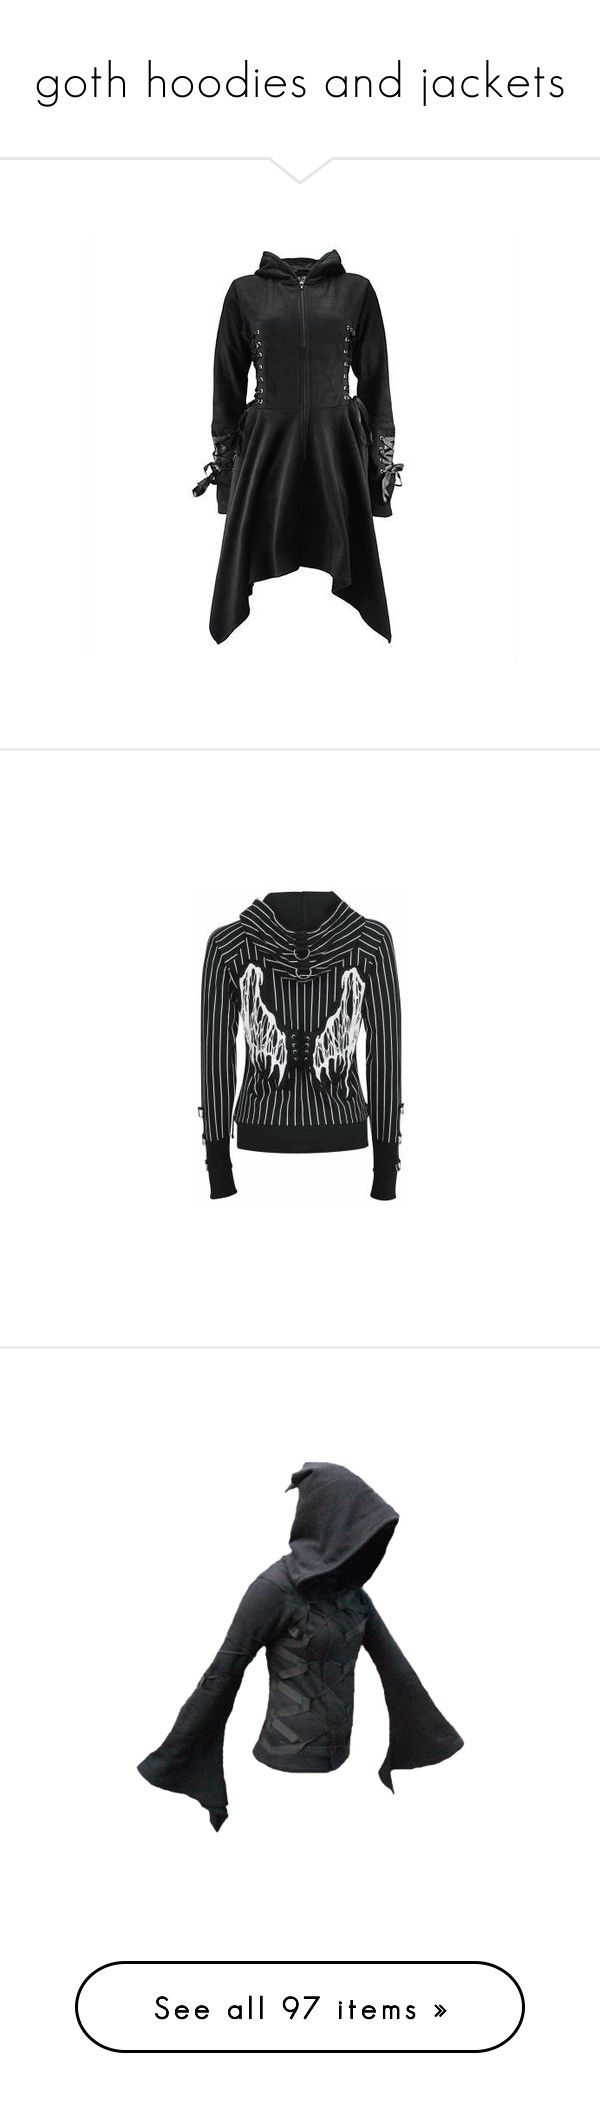 """goth hoodies and jackets"" by octoburfrost ❤ liked on Polyvore featuring outerwear, jackets, coats, goth, poizen industries, black jacket, gothic jacket, goth jacket, tops and hoodies"